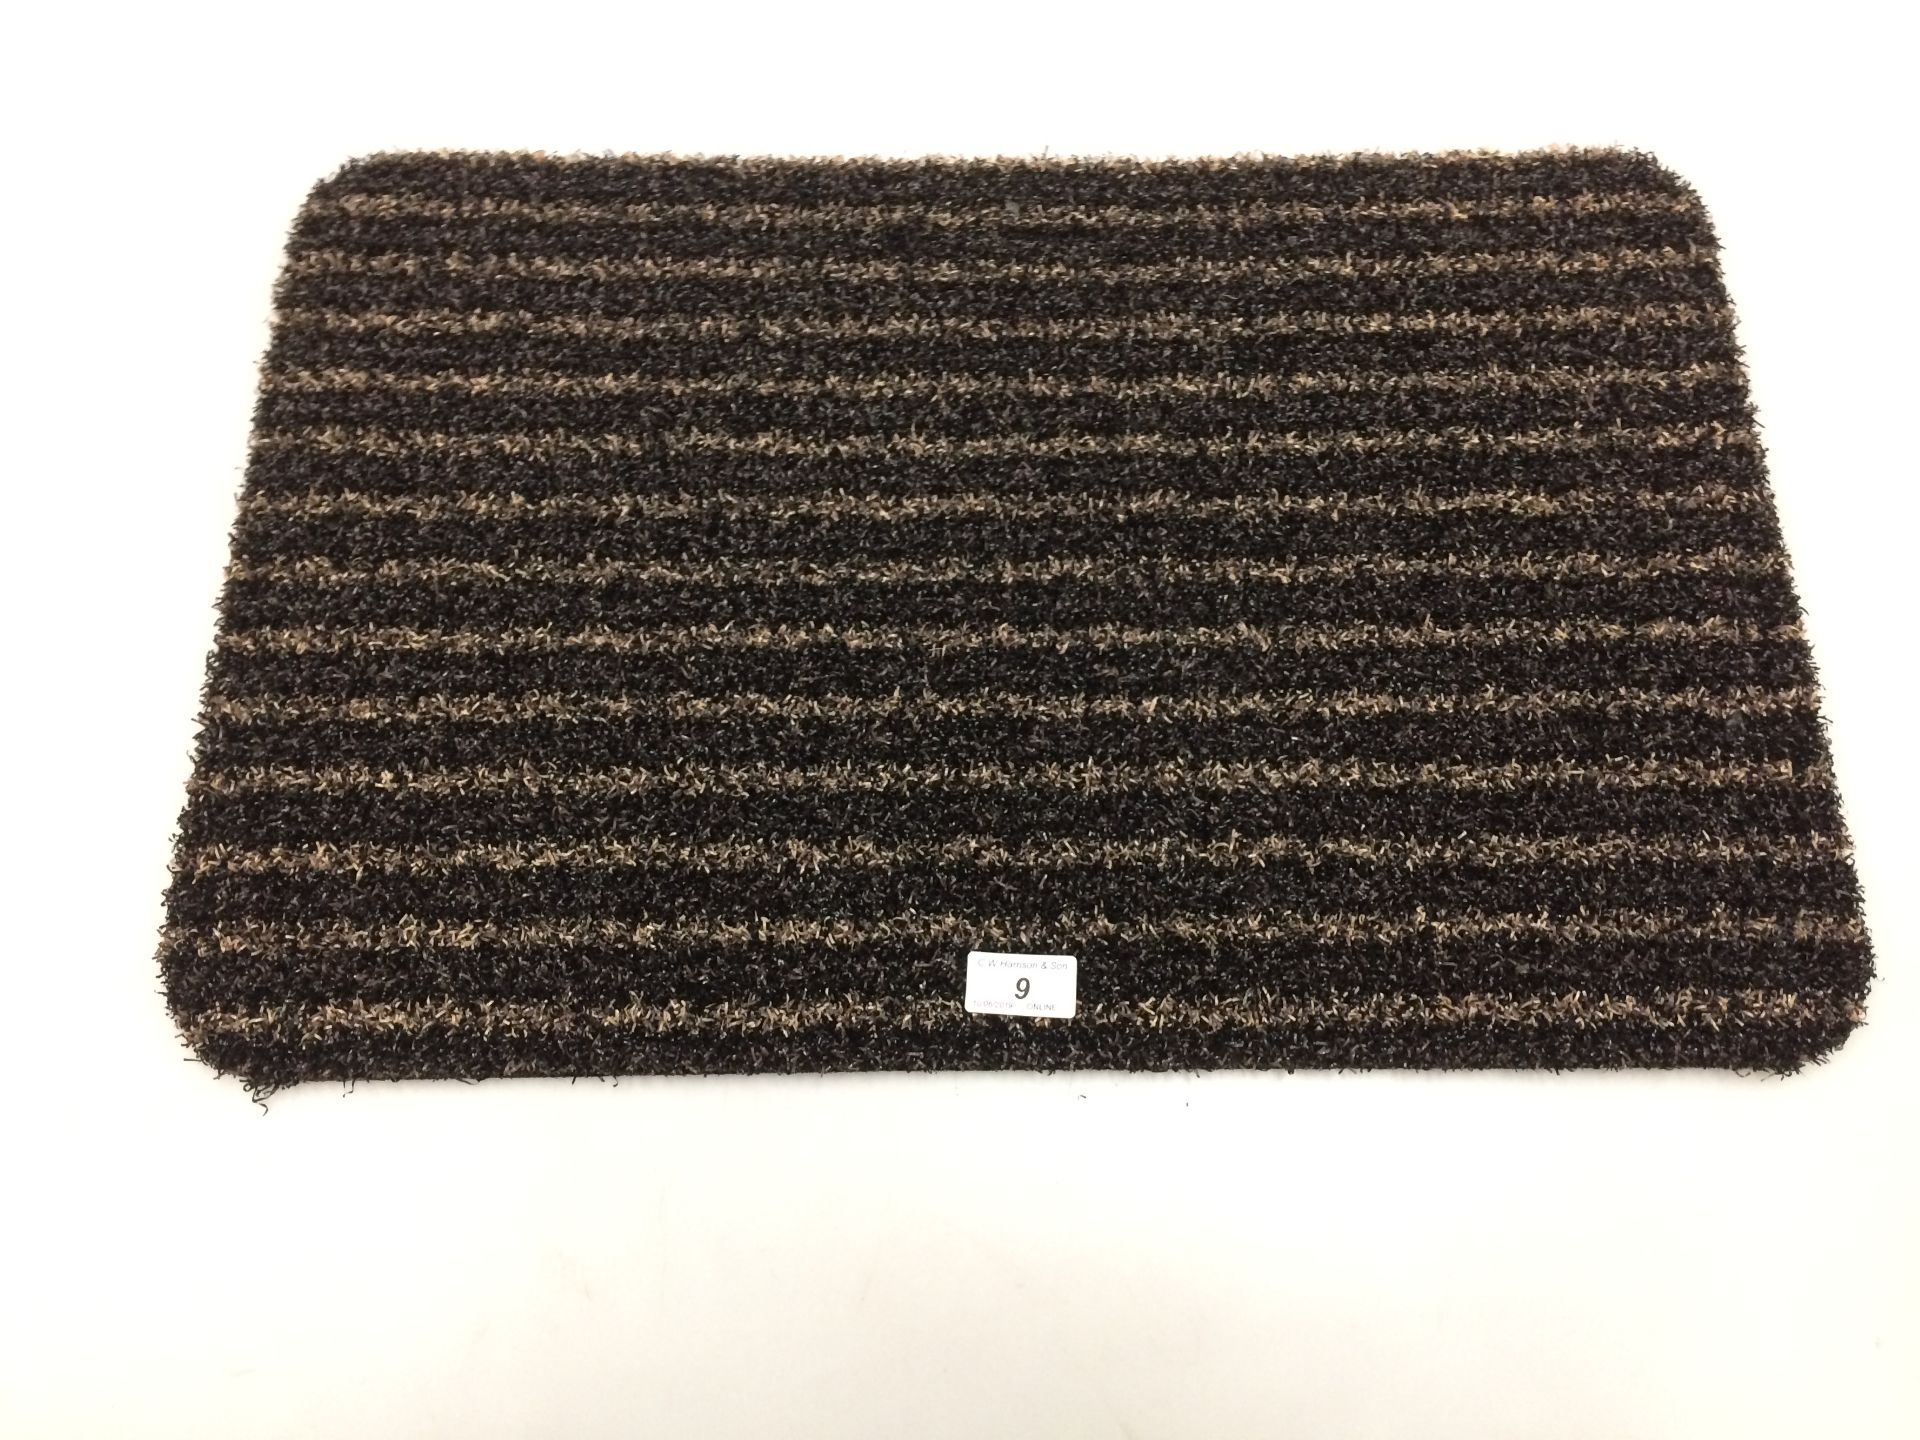 Lot 9 - 10 x black and gold striped door mats with rubber anti-slip inlay each 40 x 60cm